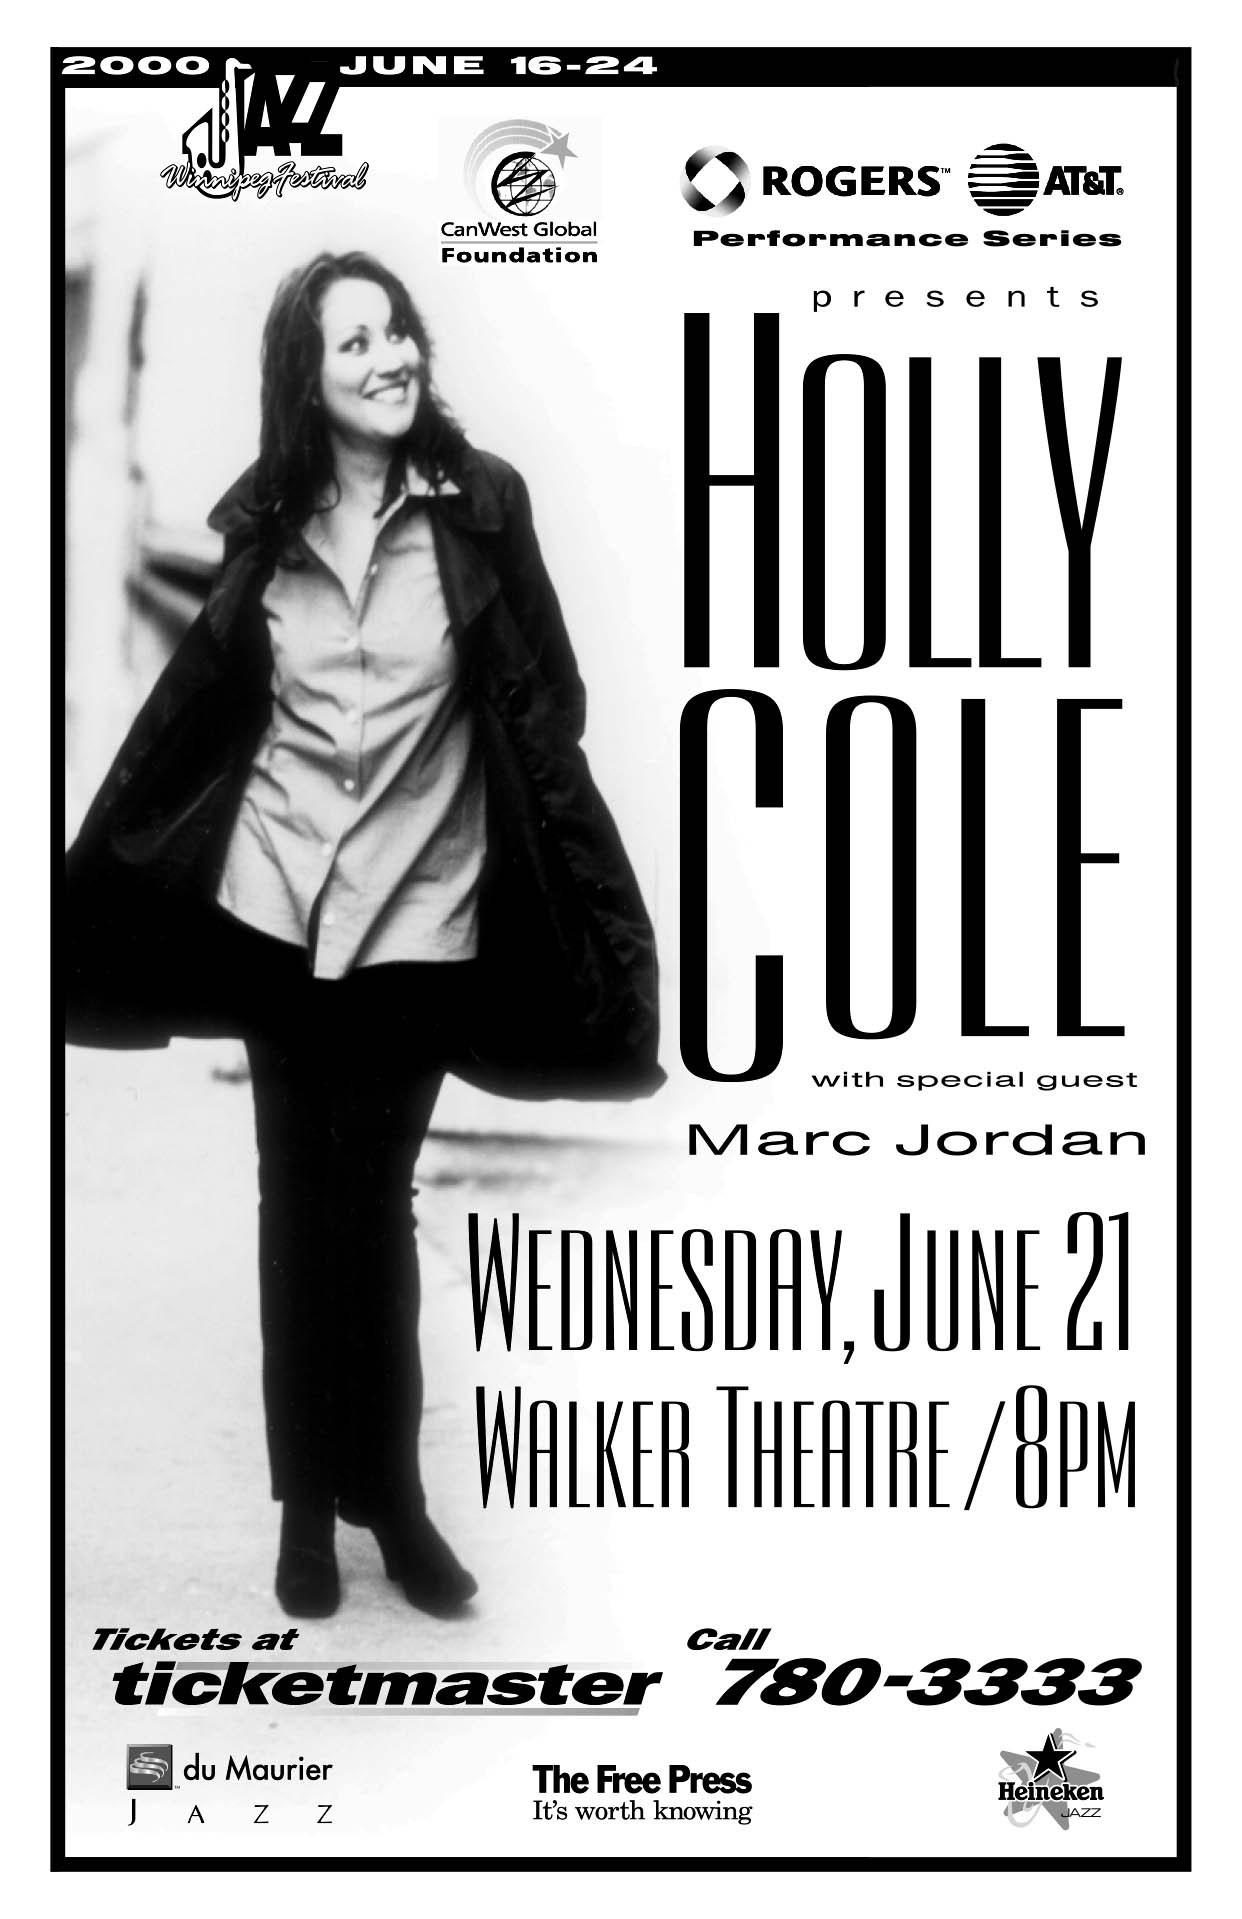 HOLLY COLE – 2000